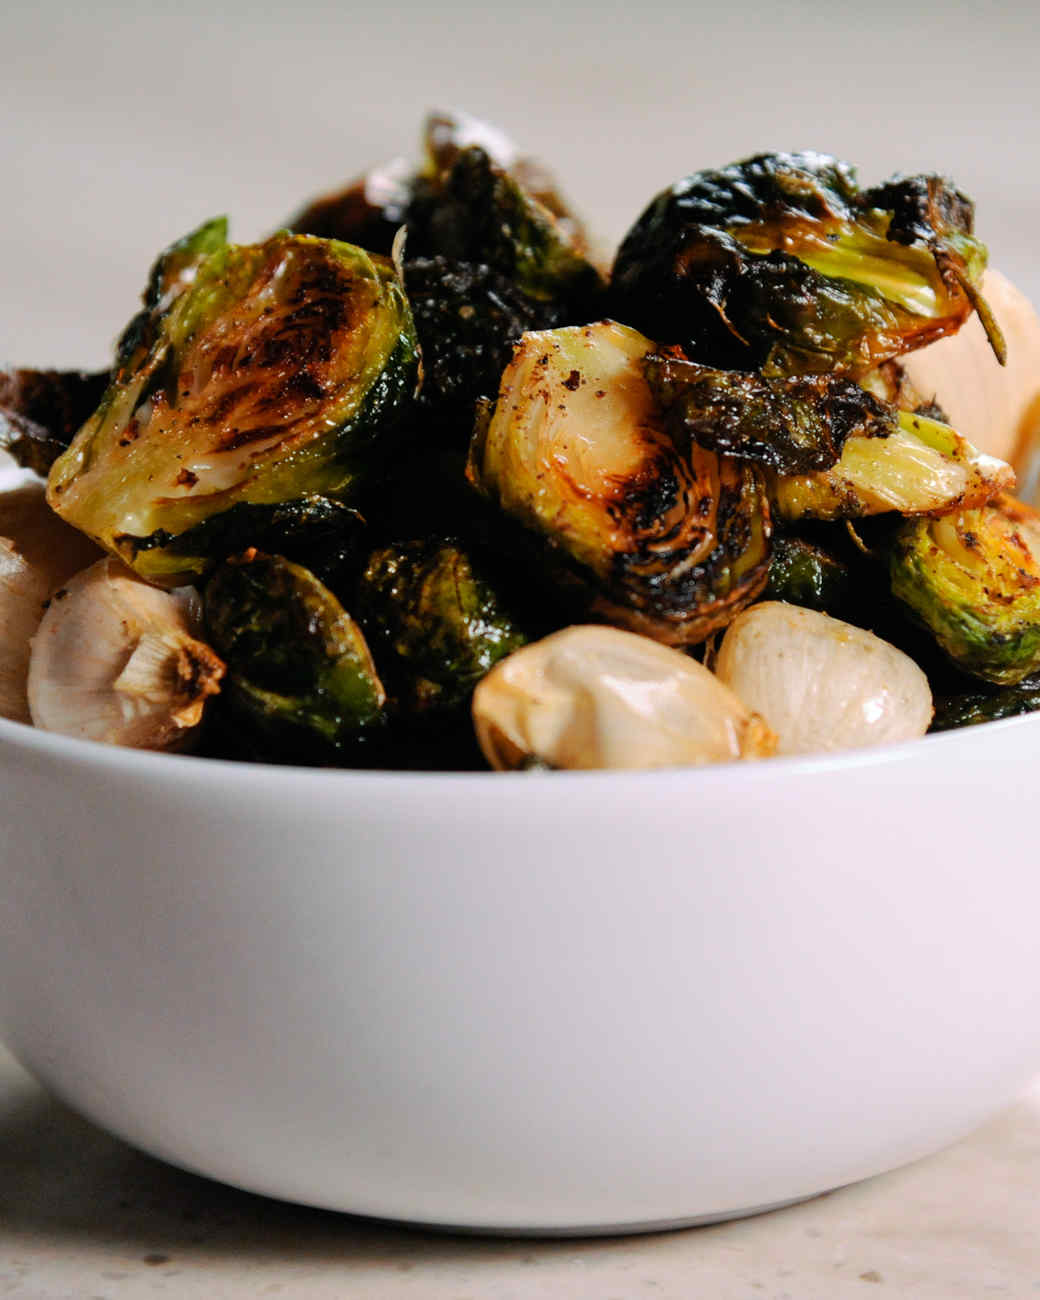 roasted-brussels-sprouts-mscs109.jpg